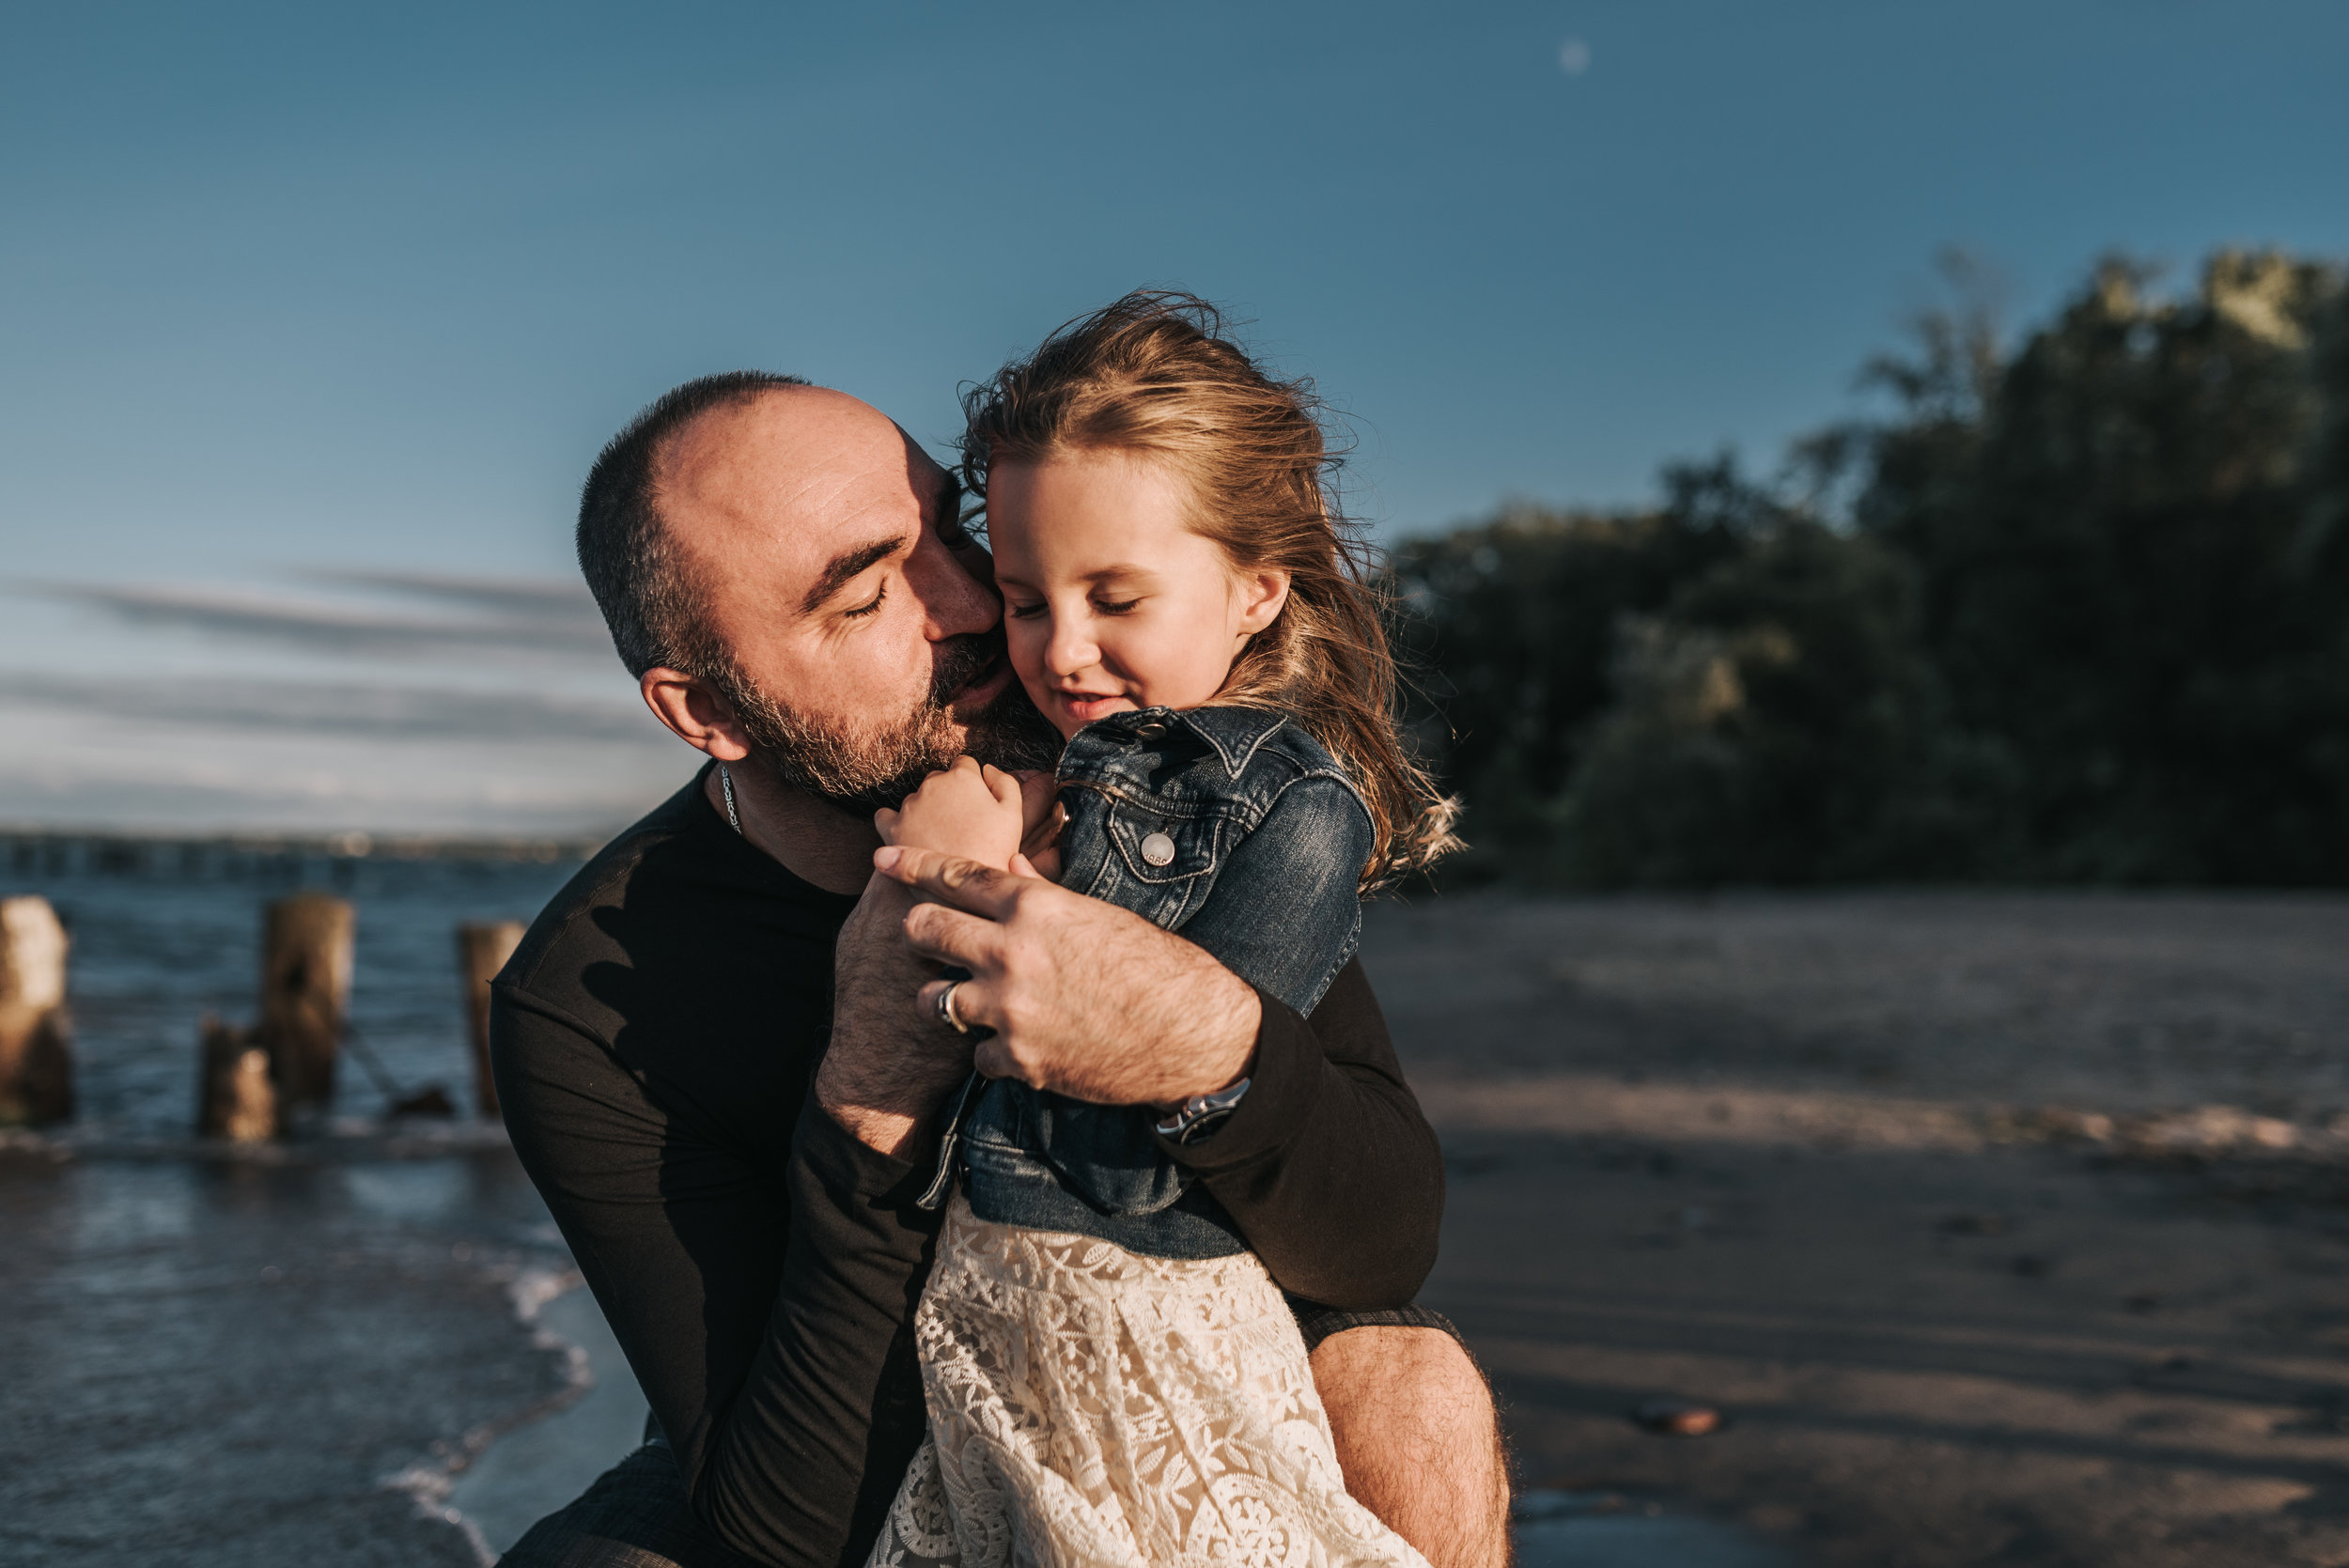 windy beach session, father and daughter, family photography, lifestyle photograph